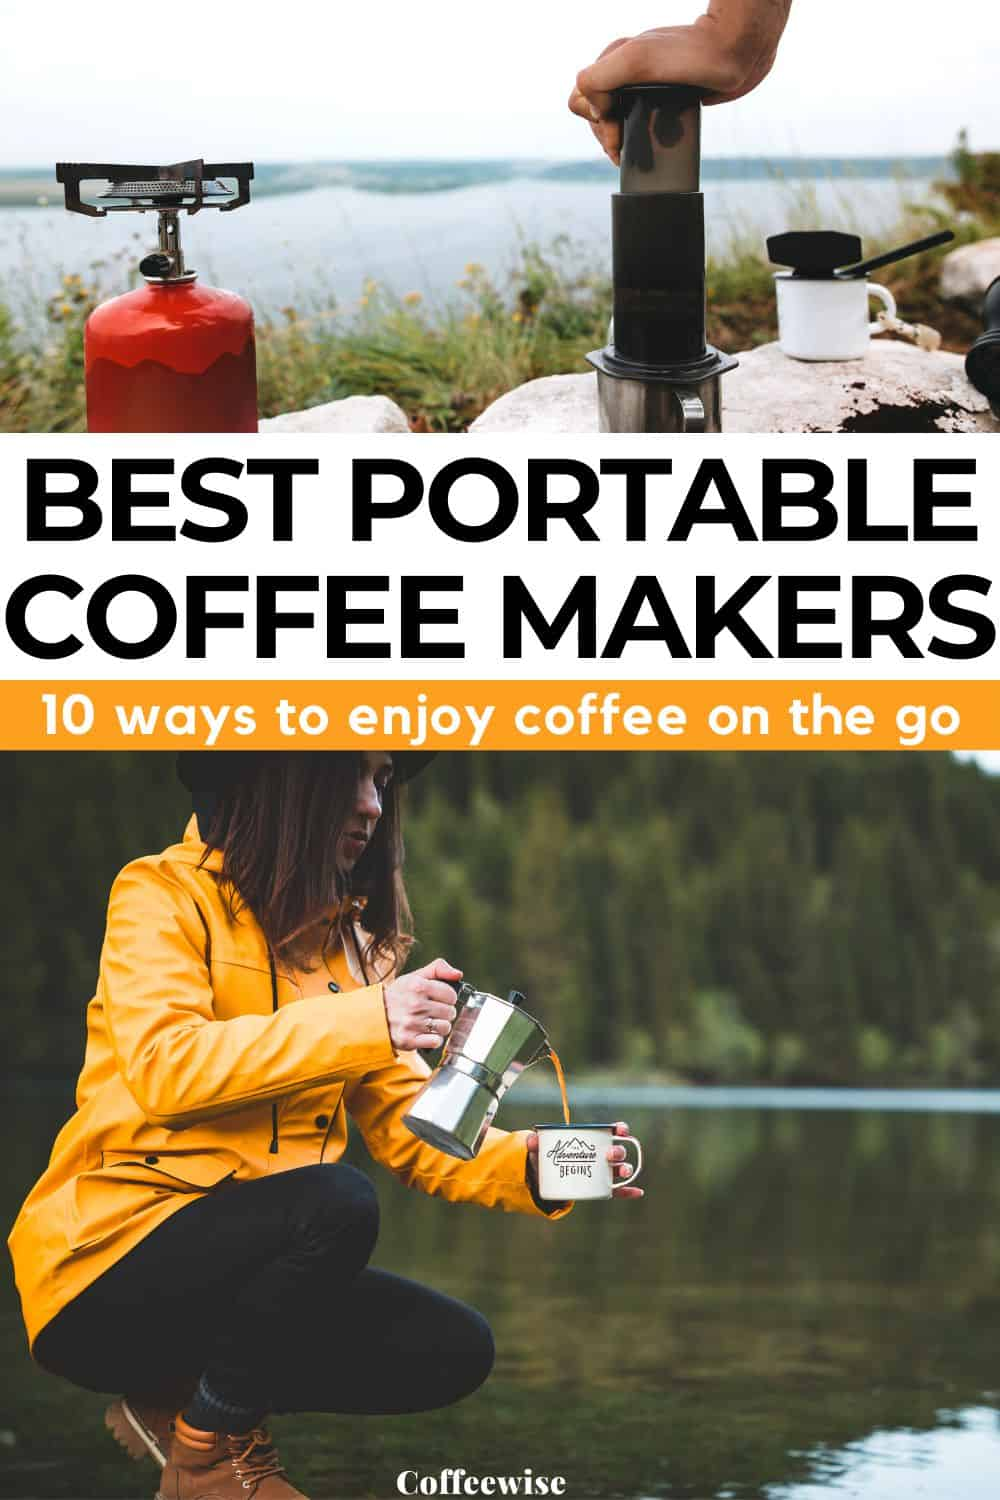 two images of travel coffee makers outdoors with text Best portable coffee makers